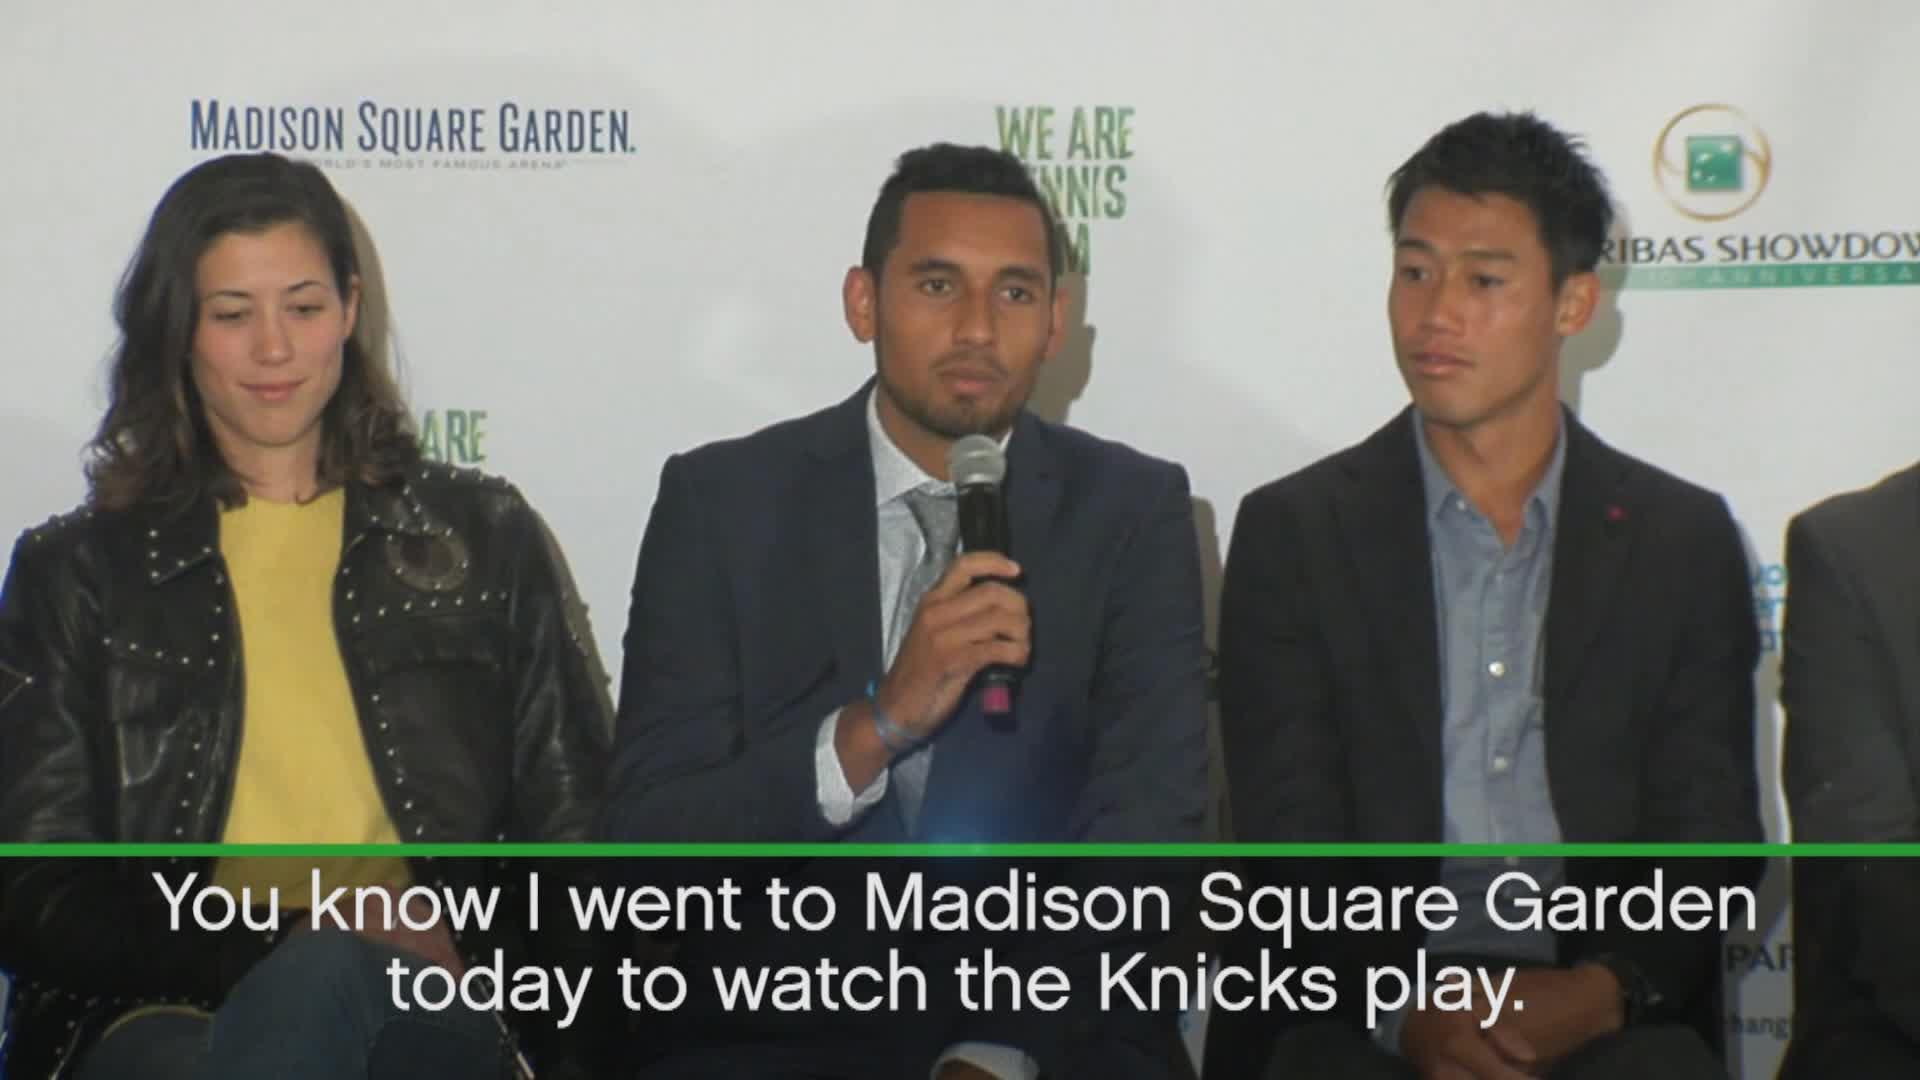 Nba Fan Kyrgios Ecxited To Play At Madison Square Gardens Video